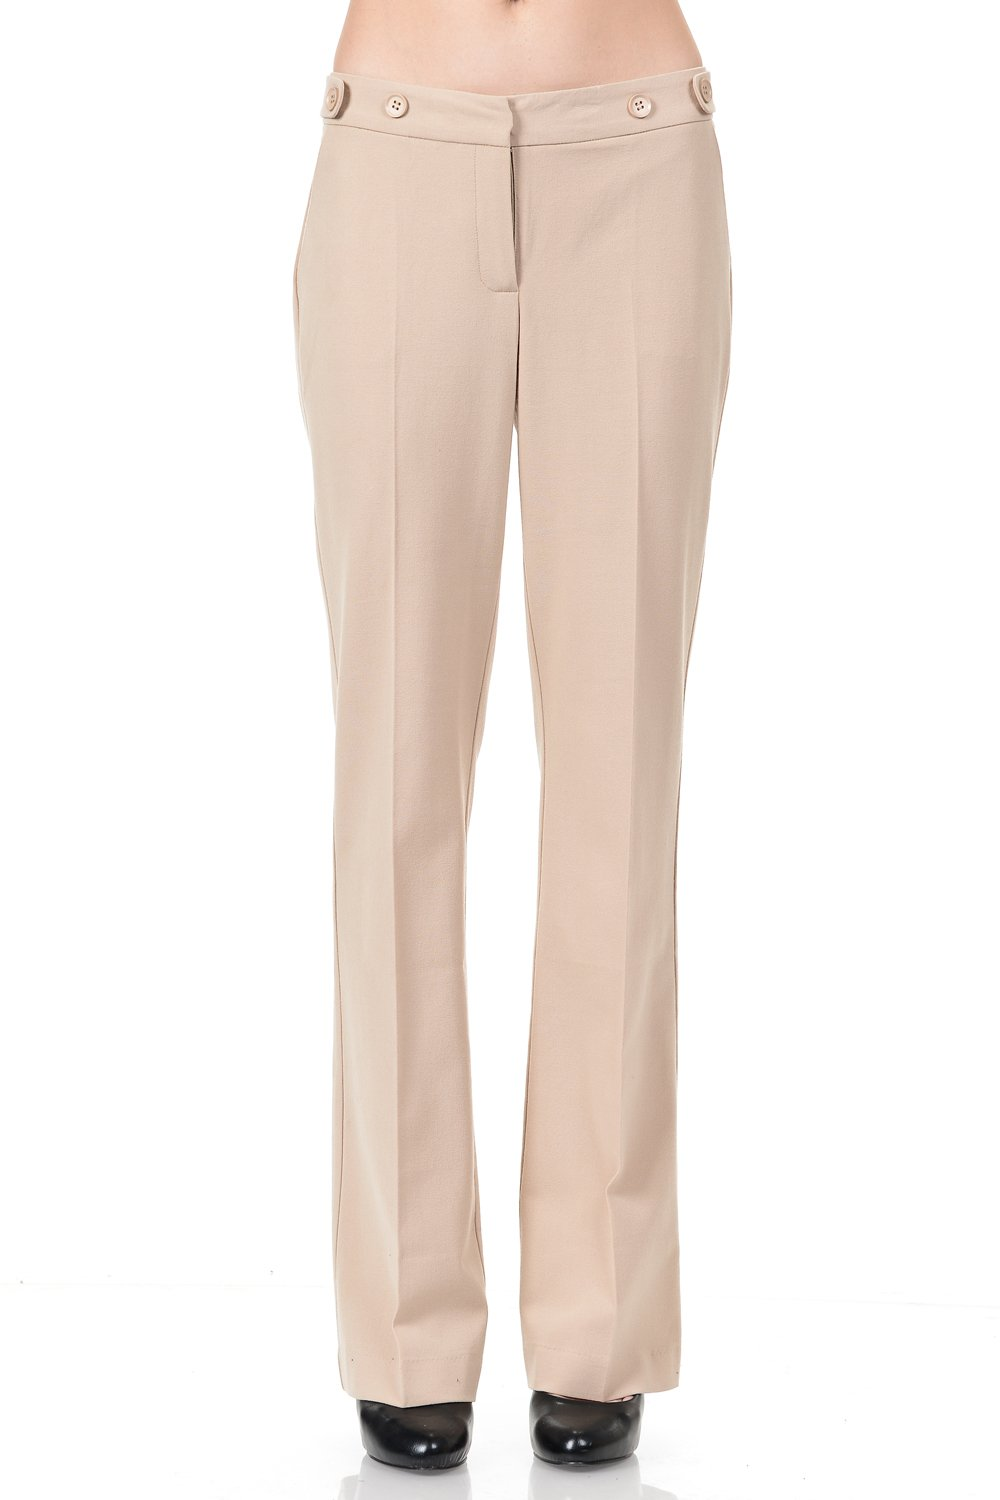 Maryclan Career Women's Dress Pants Little Boot Cut With Double Button Tab Detail (Large, Khaki)